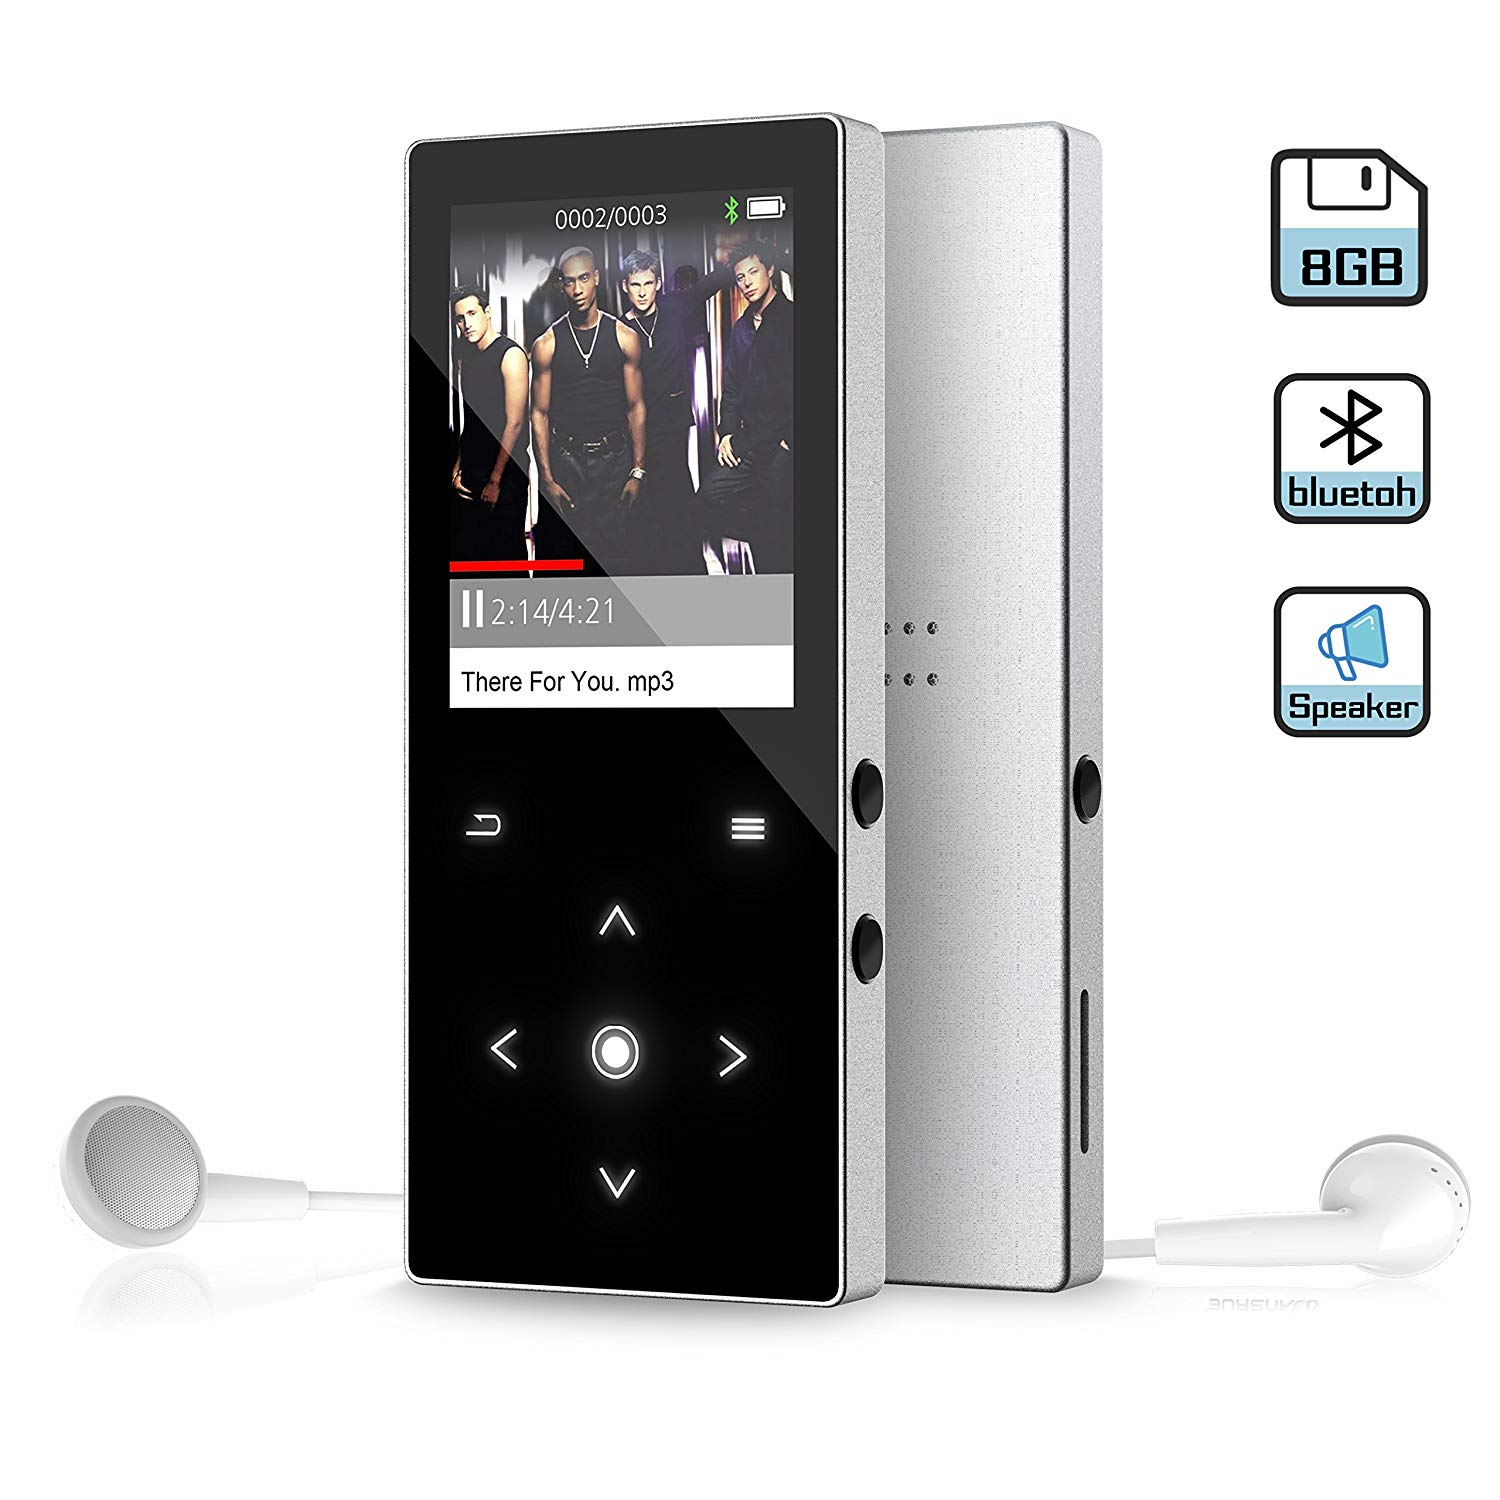 8GB MP3 Music Player with Bluetooth 4.0, Latest Dansrue Portable Digital Music Audio Player with FM Radio/Speaker, HD Sound Quality Earphones, Metal Shell Touch buttons, Sliver